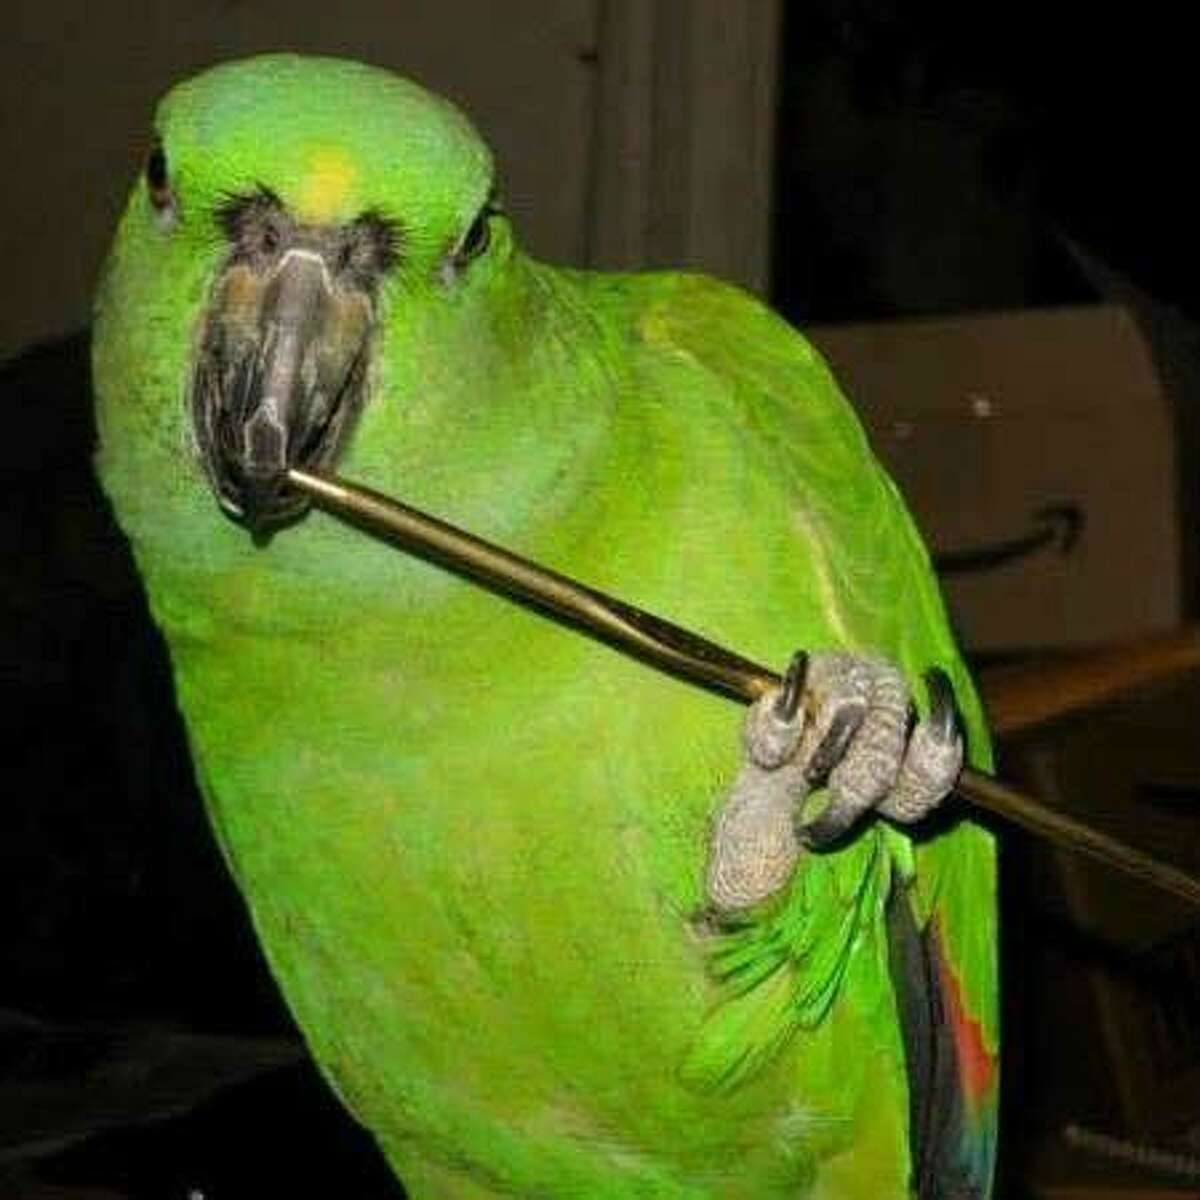 Penne the parrot is still missing after flying from a Norwalk house fire that claimed the life of its owner.